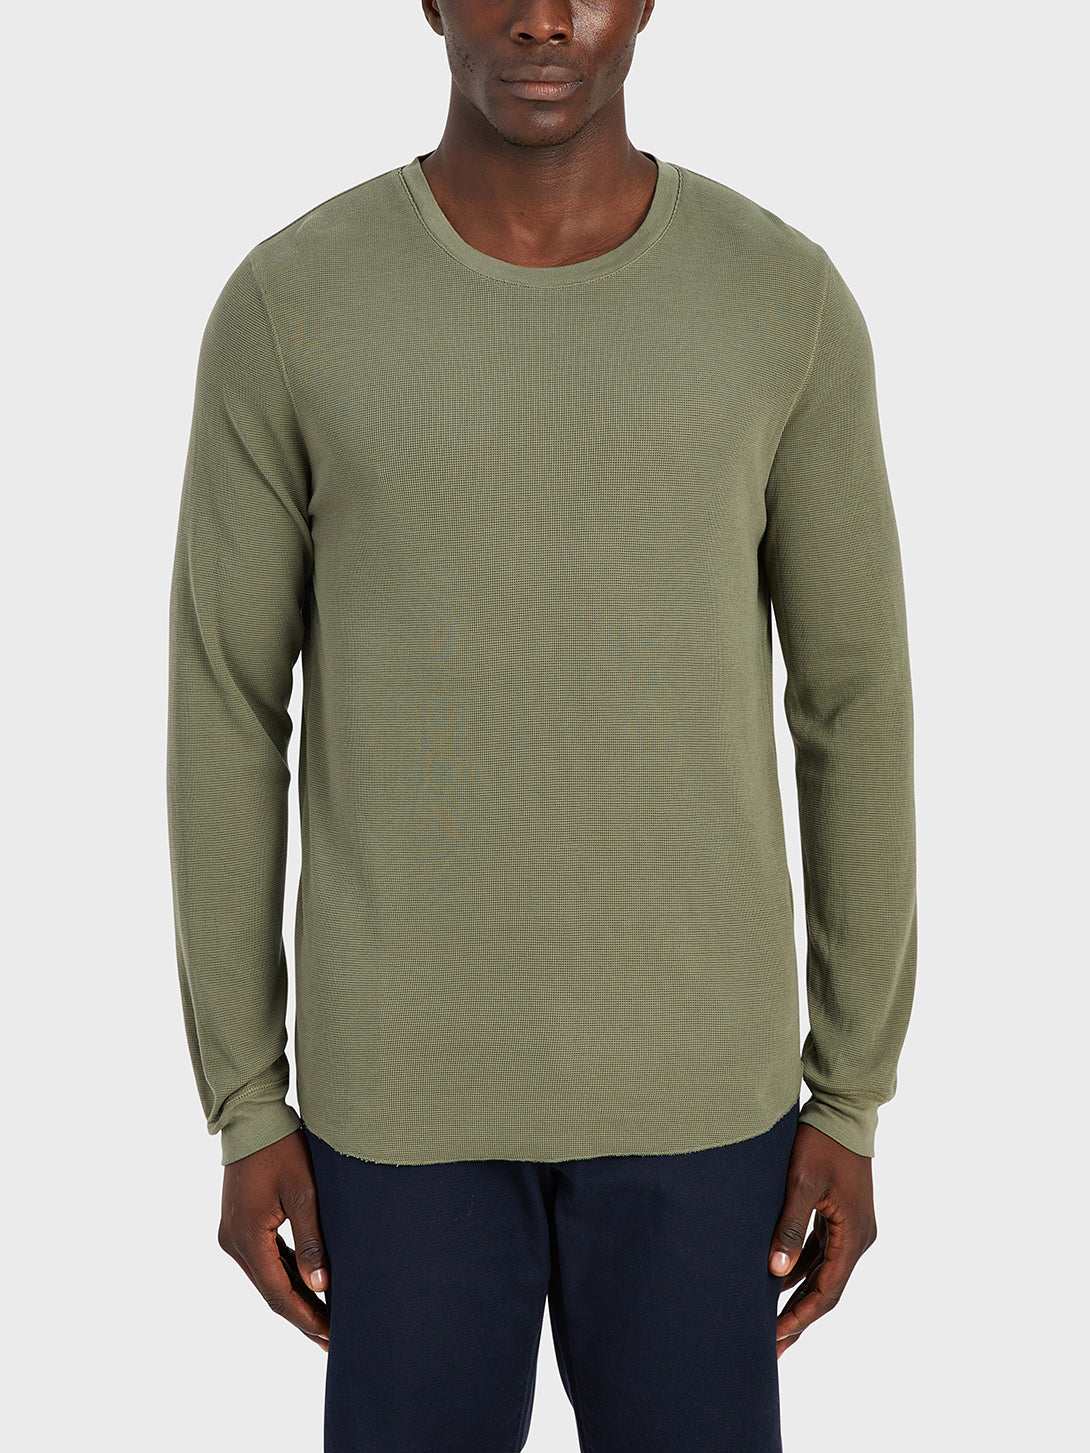 ONS Clothing Men's WAFFLE L/S VILLAGE CREW Pre-shrunk Cotton in OLIVE